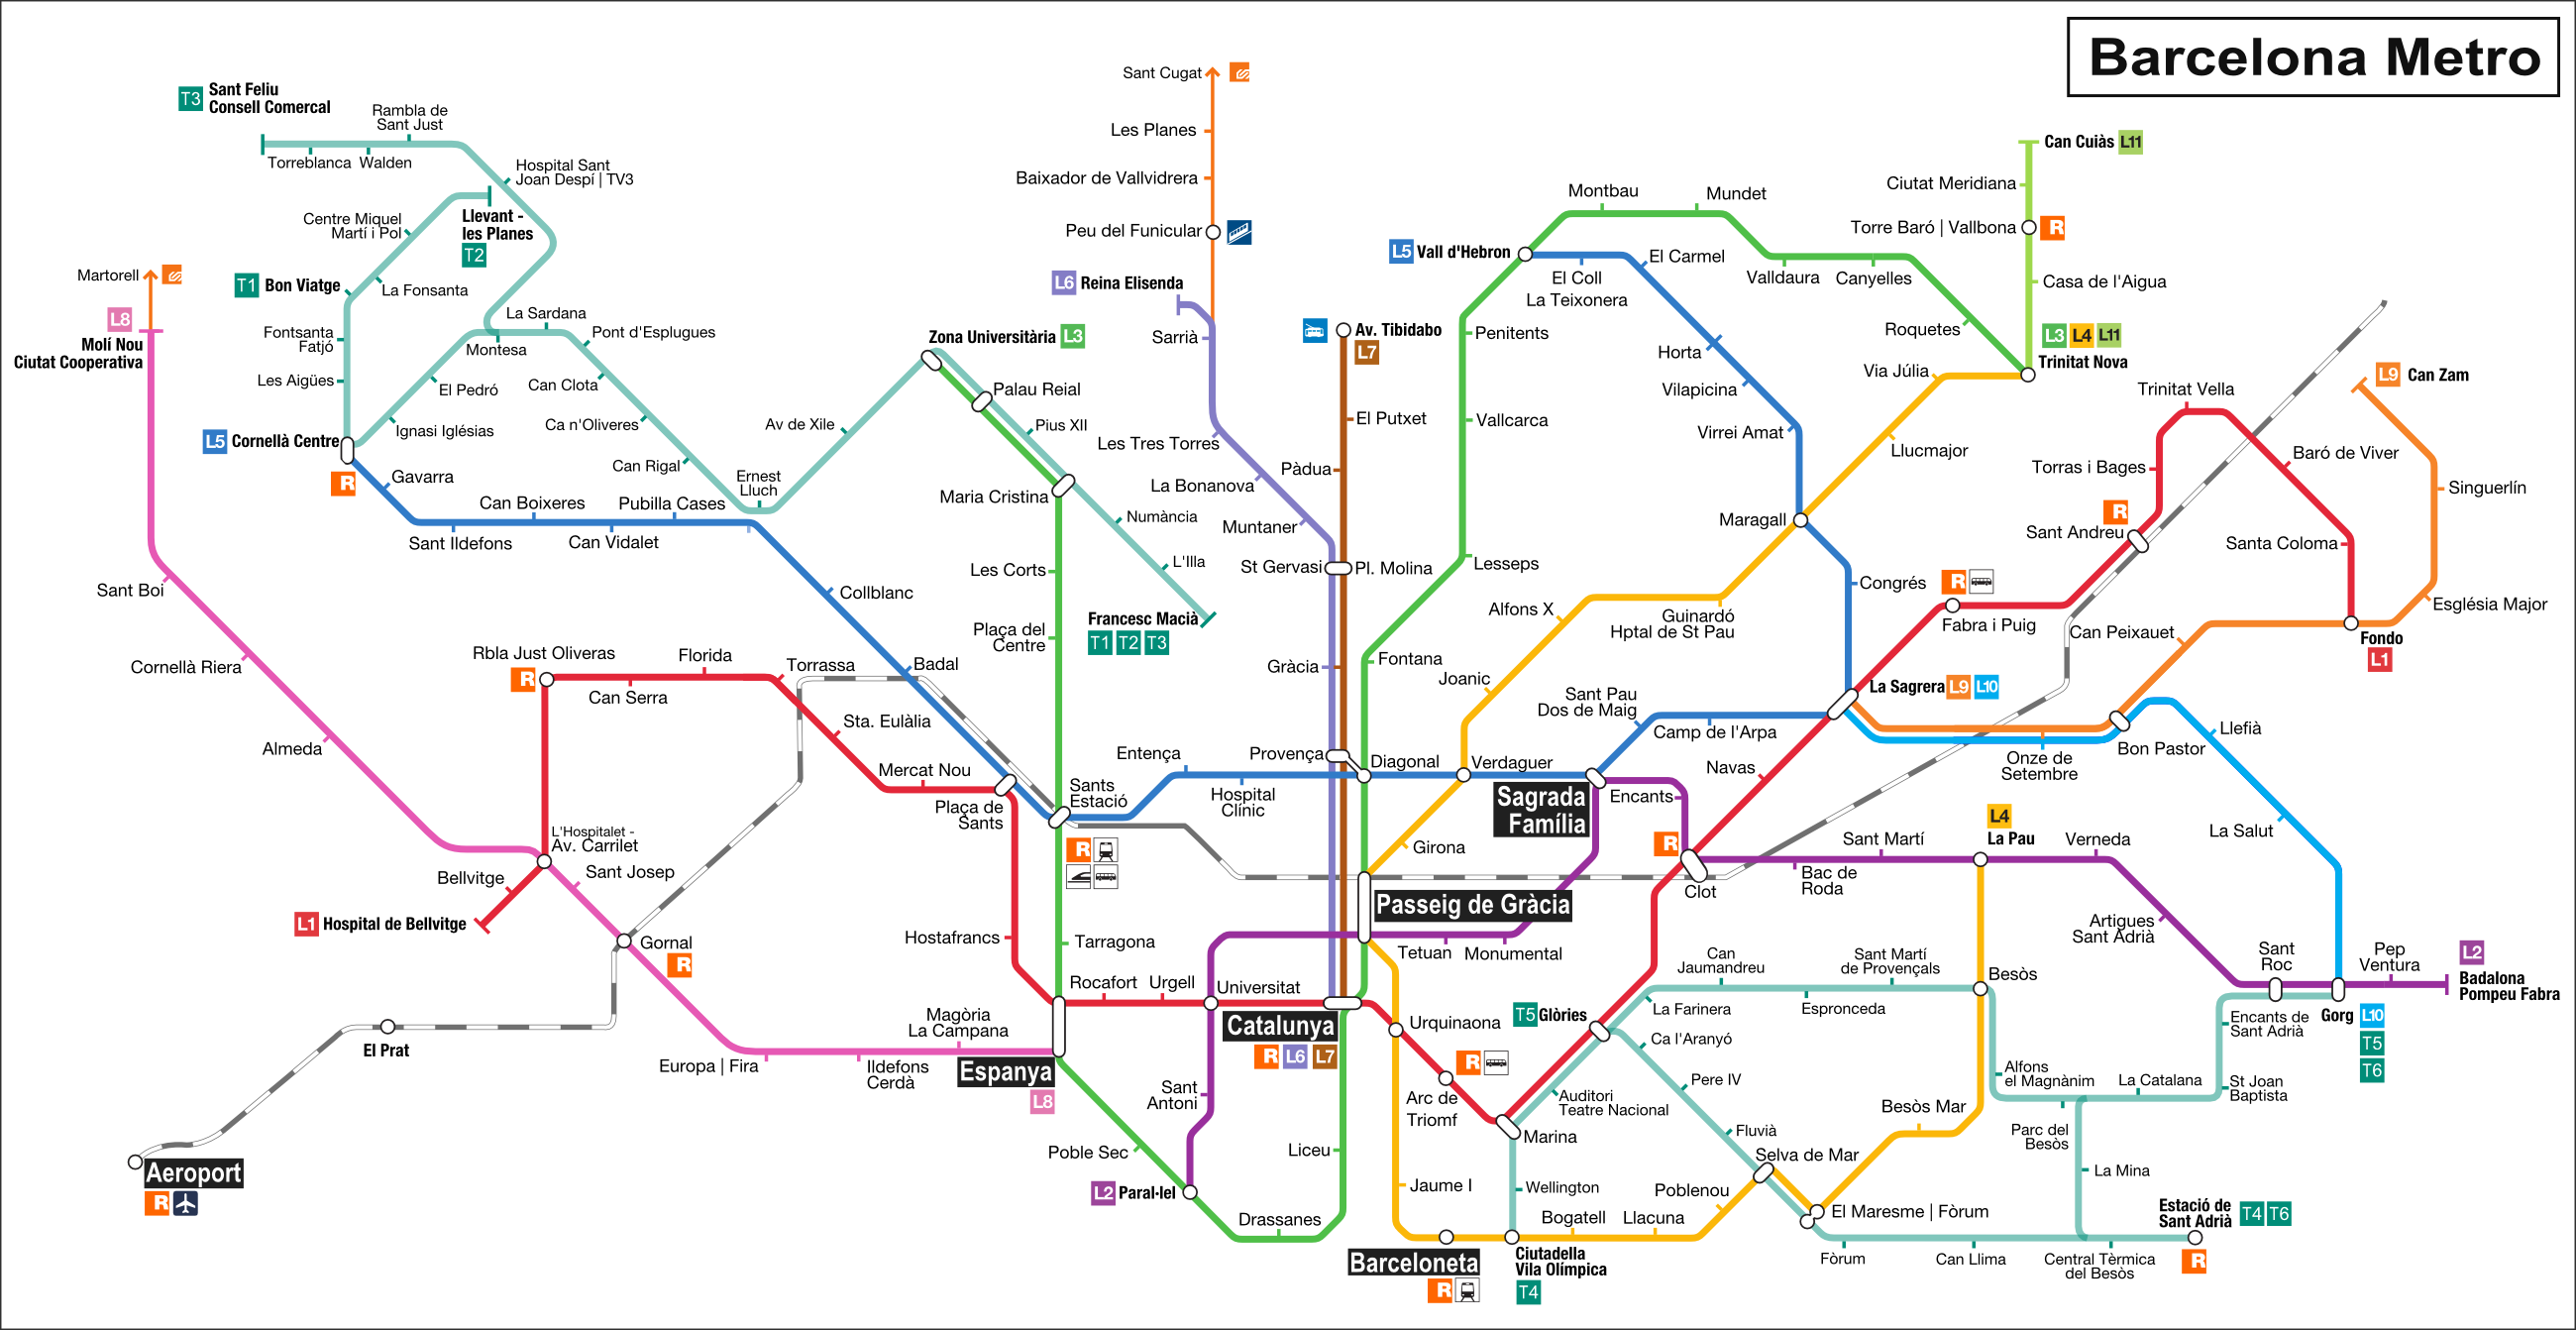 File:Barcelona metro map.png - Wikimedia Commons